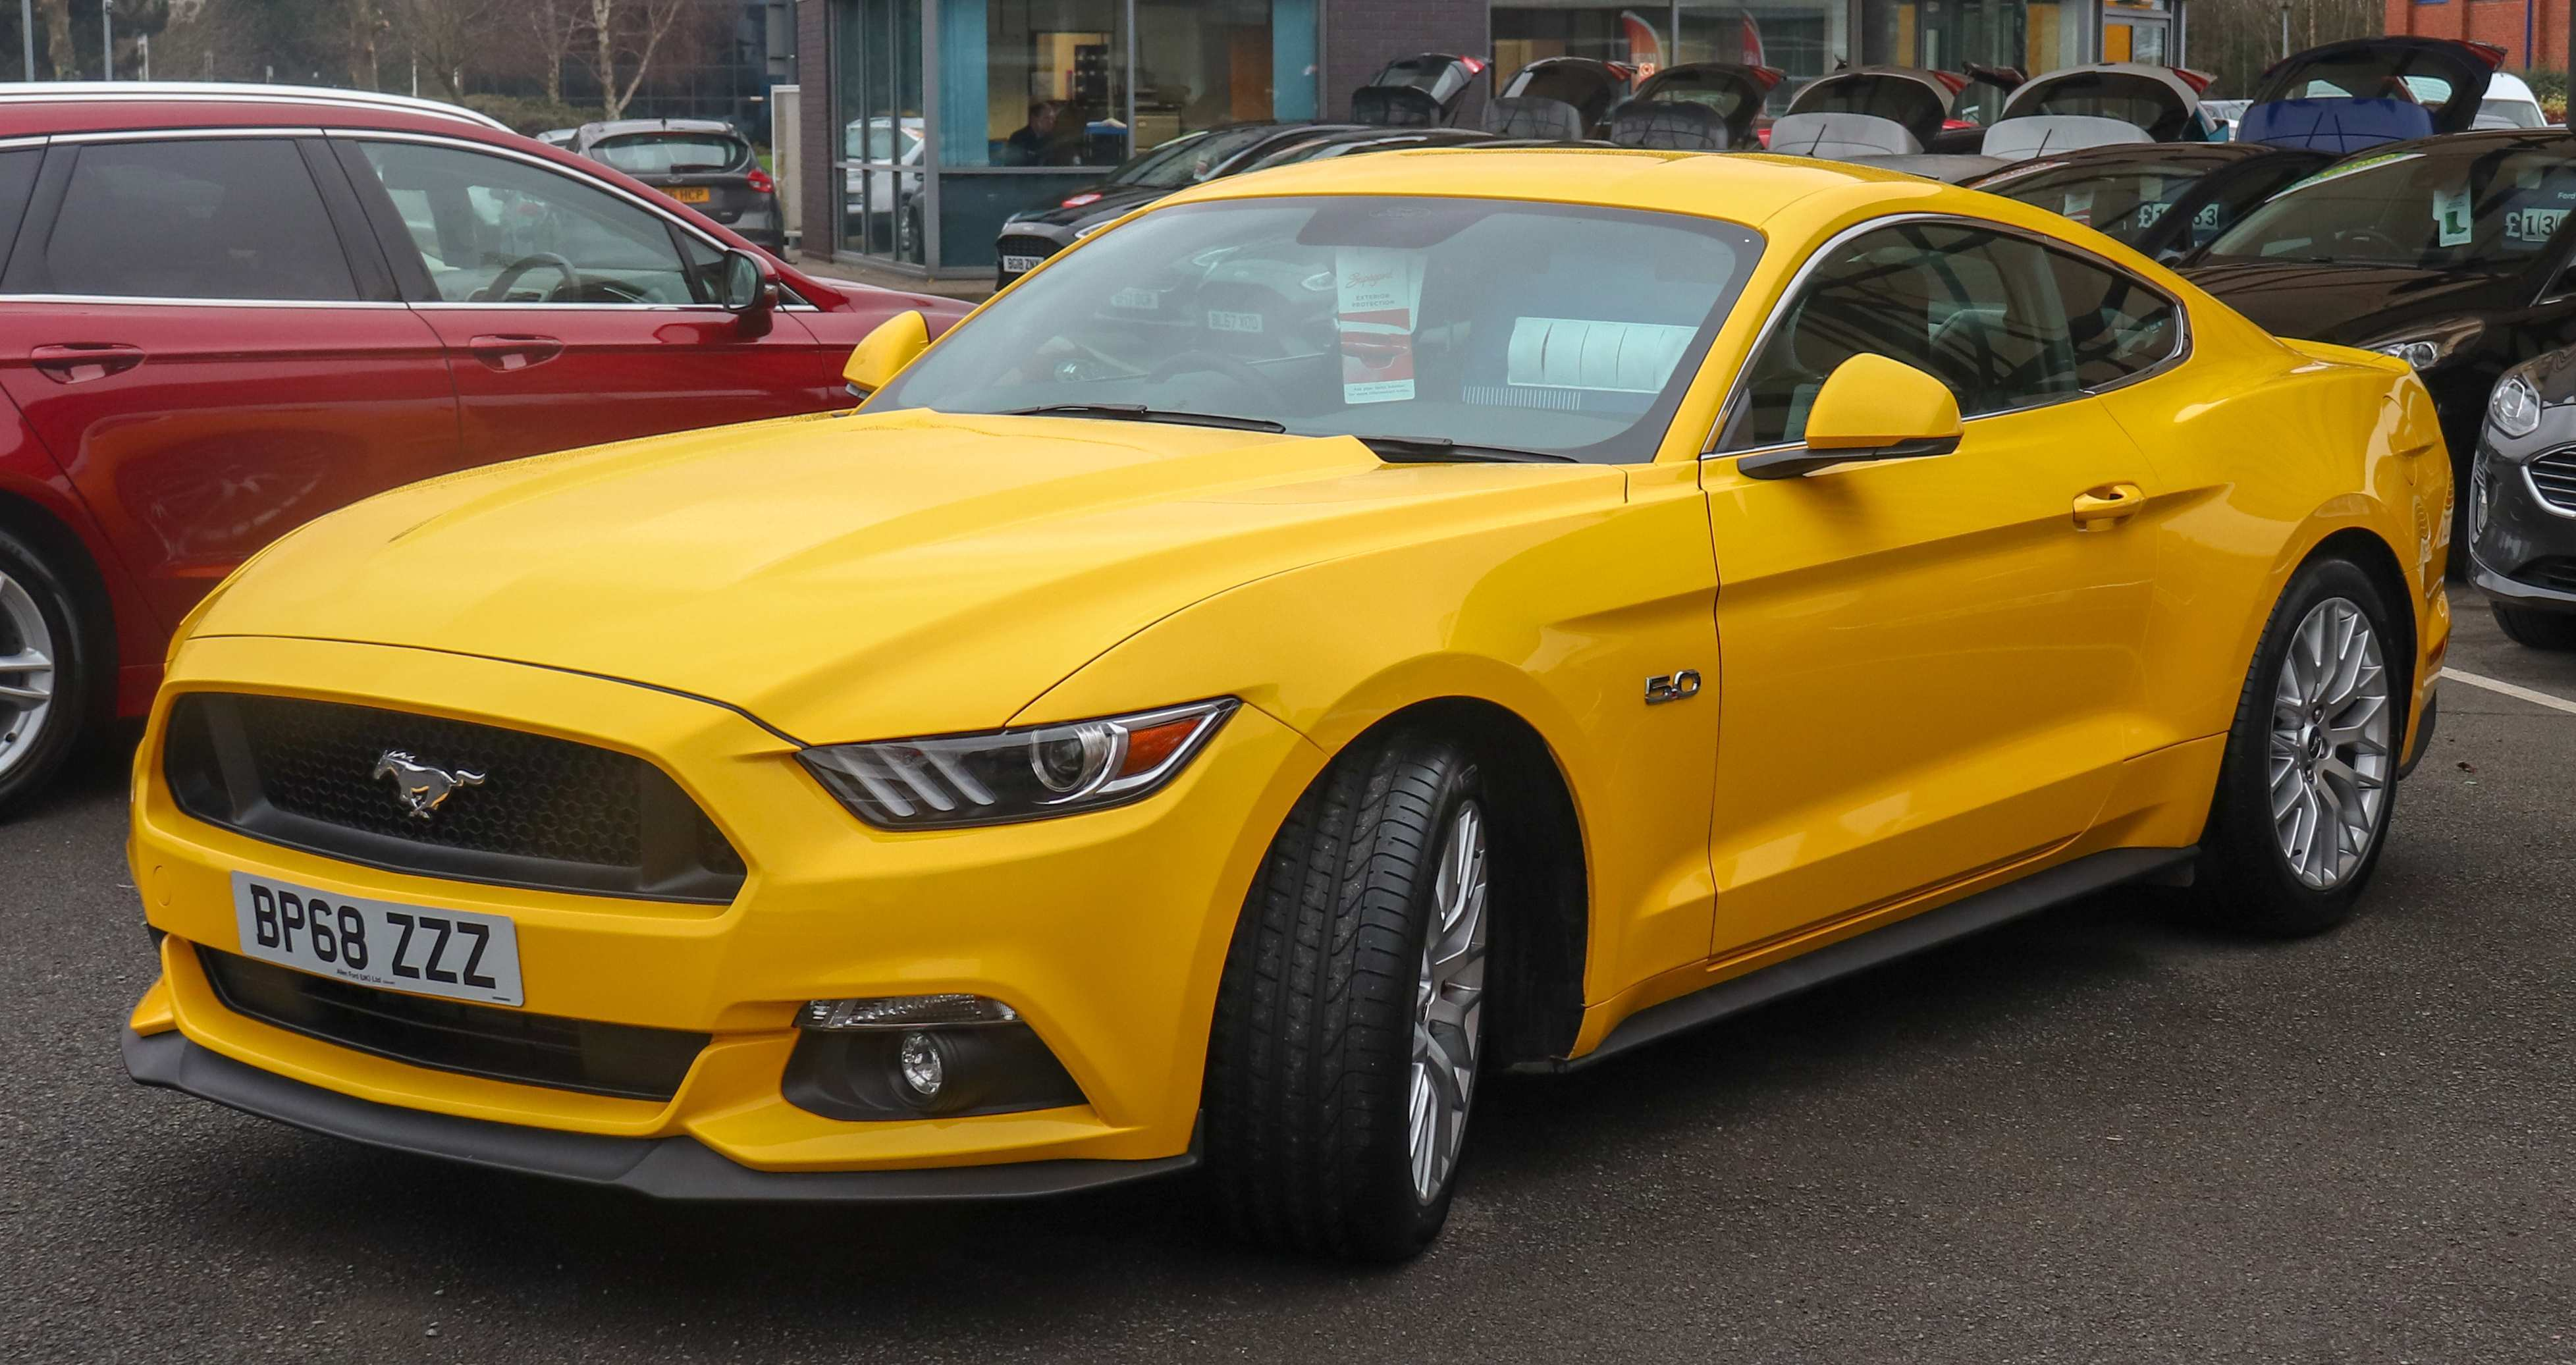 61 The Best 2020 Mustang Rocket Overview